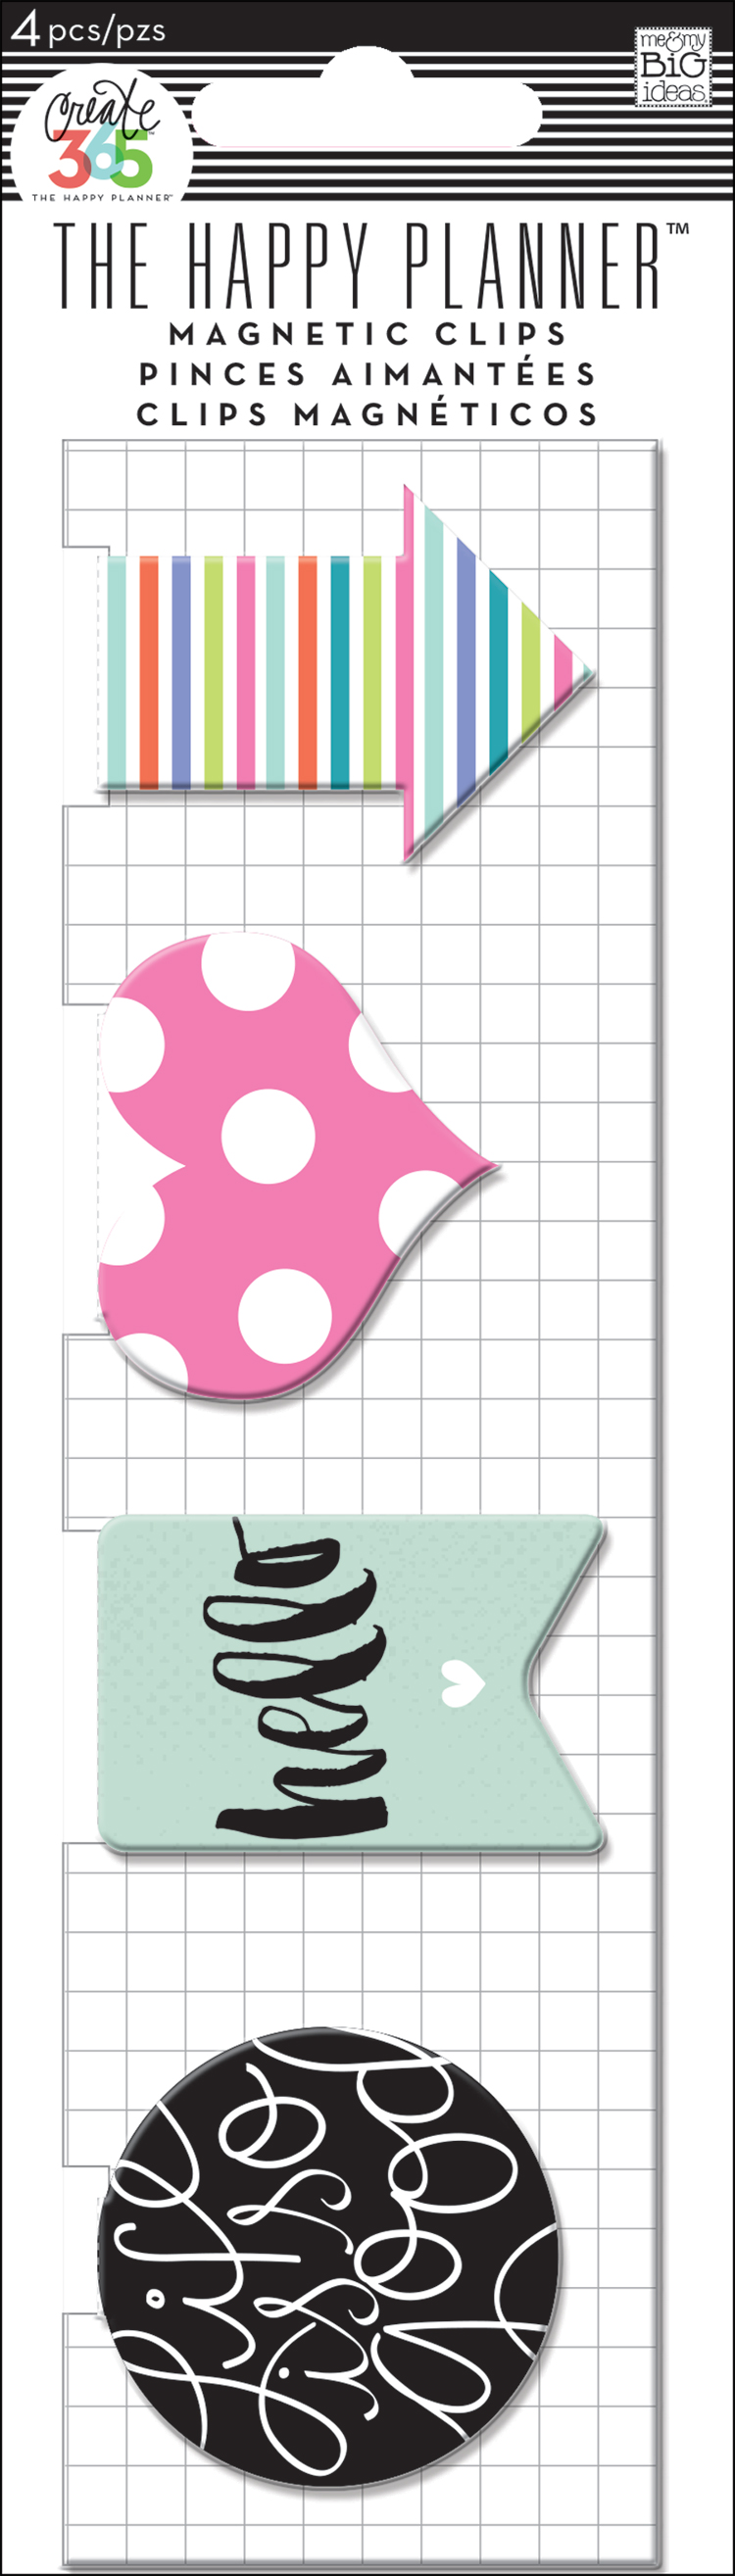 'Hello' Magnetic Page Clips for The Happy Planner™   me & my BIG ideas.jpg